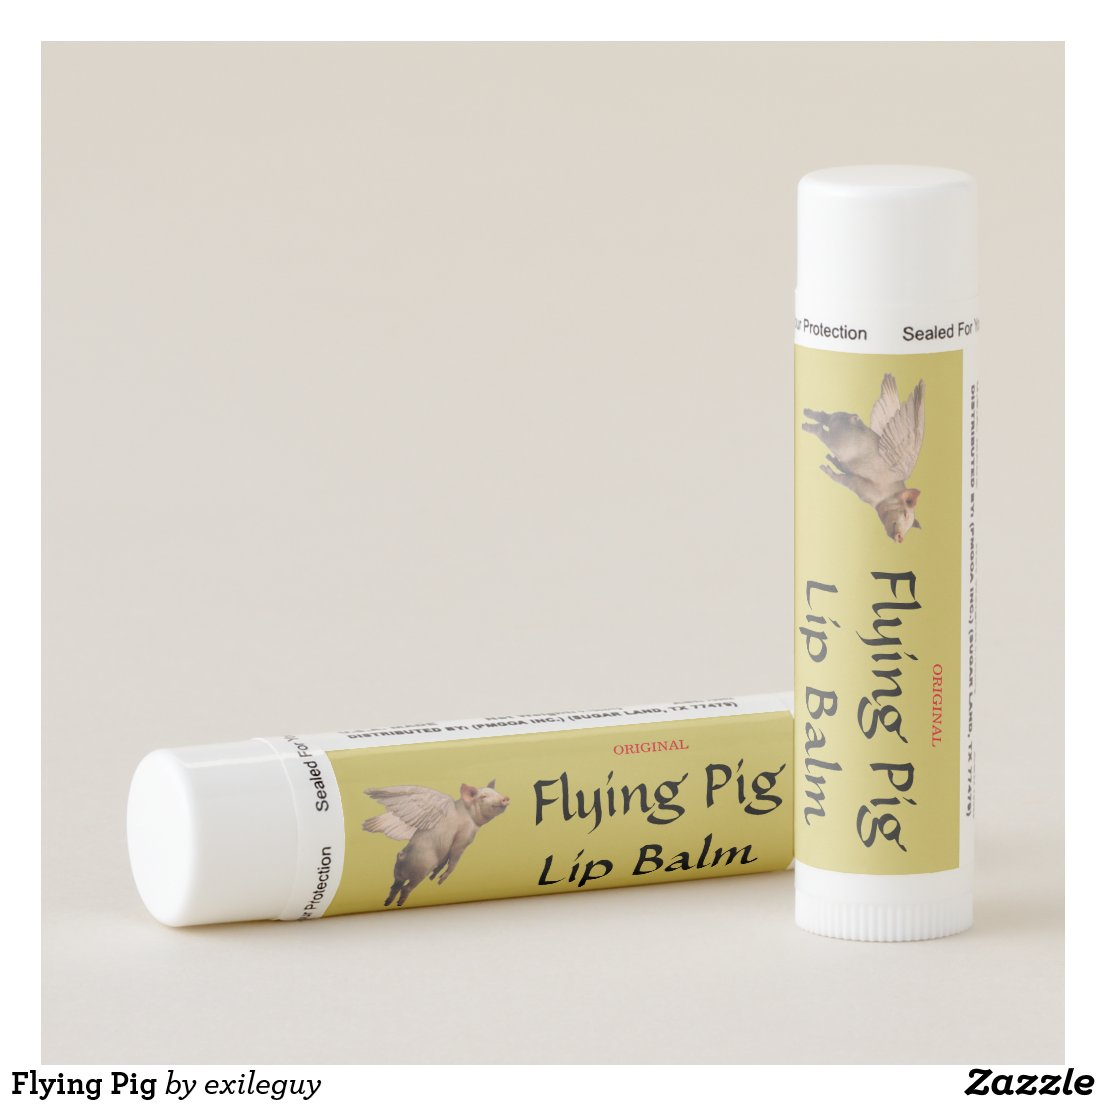 Flying Pig Lip Balm